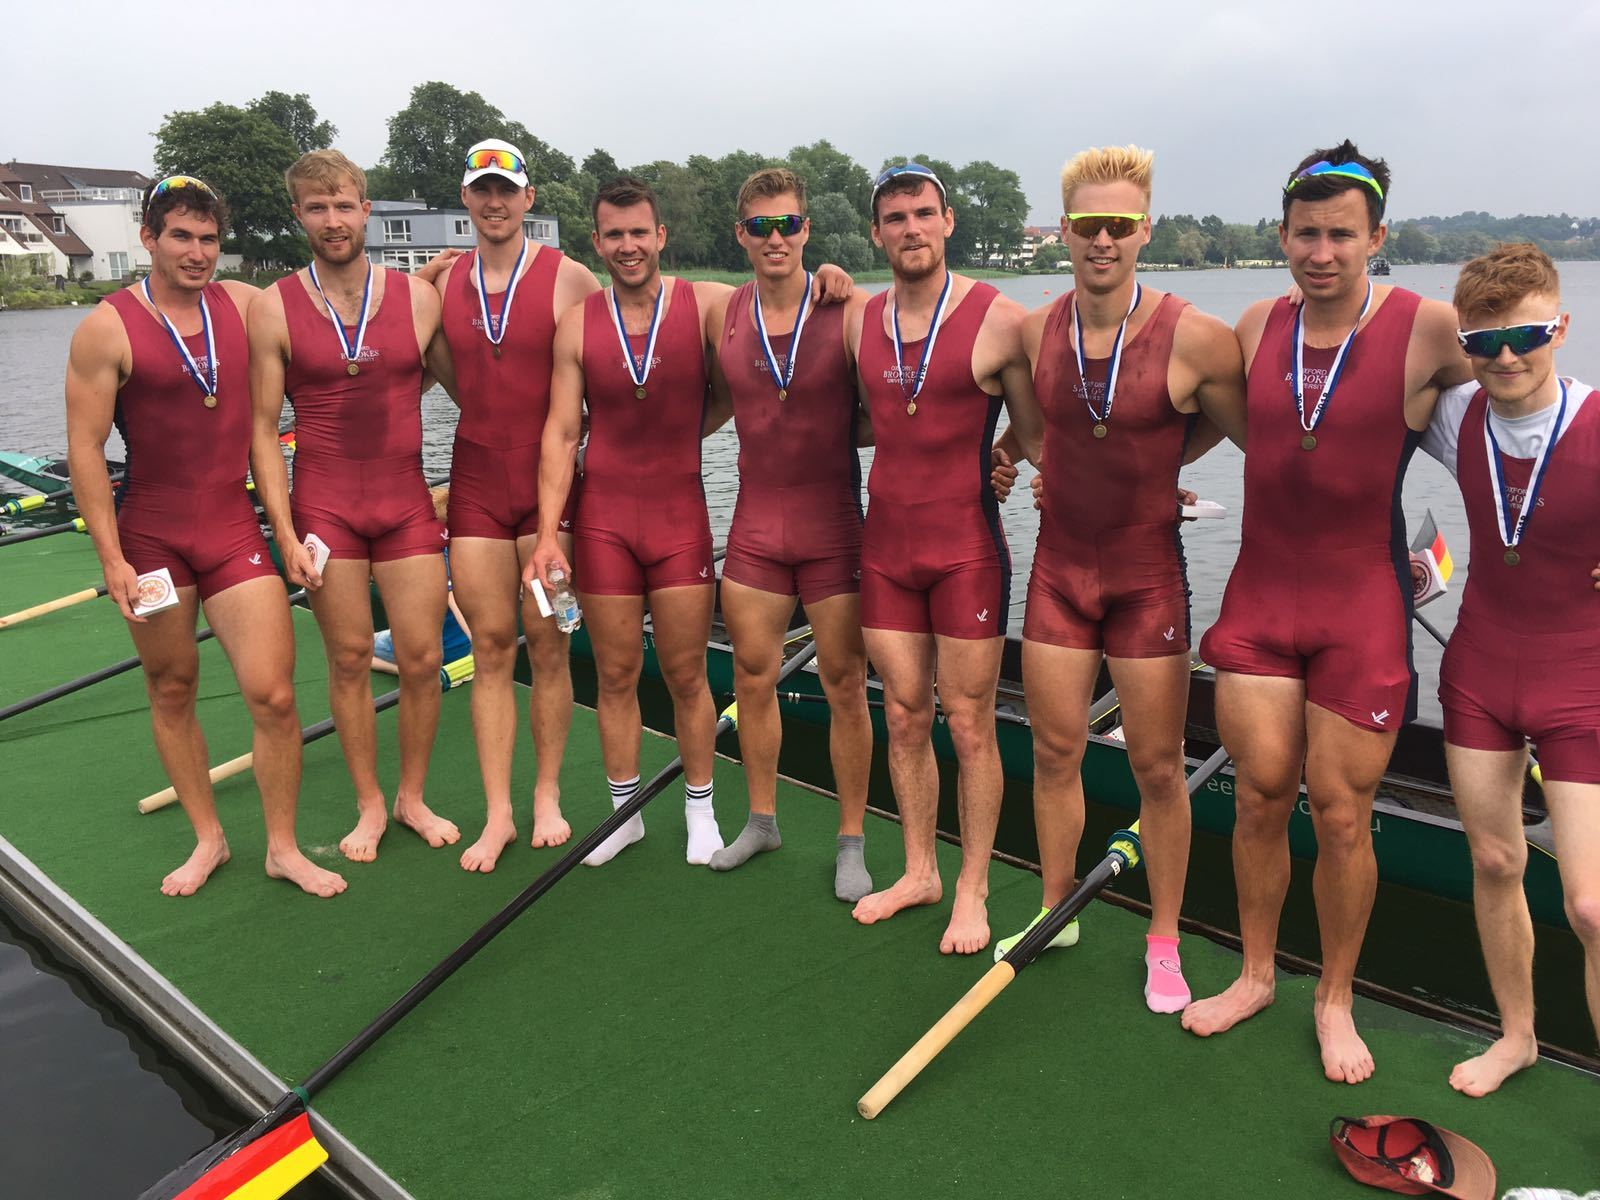 The record-breaking Oxford Brookes eight at Ratzeburg International Regatta. From left: Quentin Antongnielli, Ed Grisdale, Sam Nunn, Matthew Hnatiw, Rory Gibbs, Matthew Aldridge, Henry Swarbrick, Morgan Bolding and Harry Brightmore (cox)